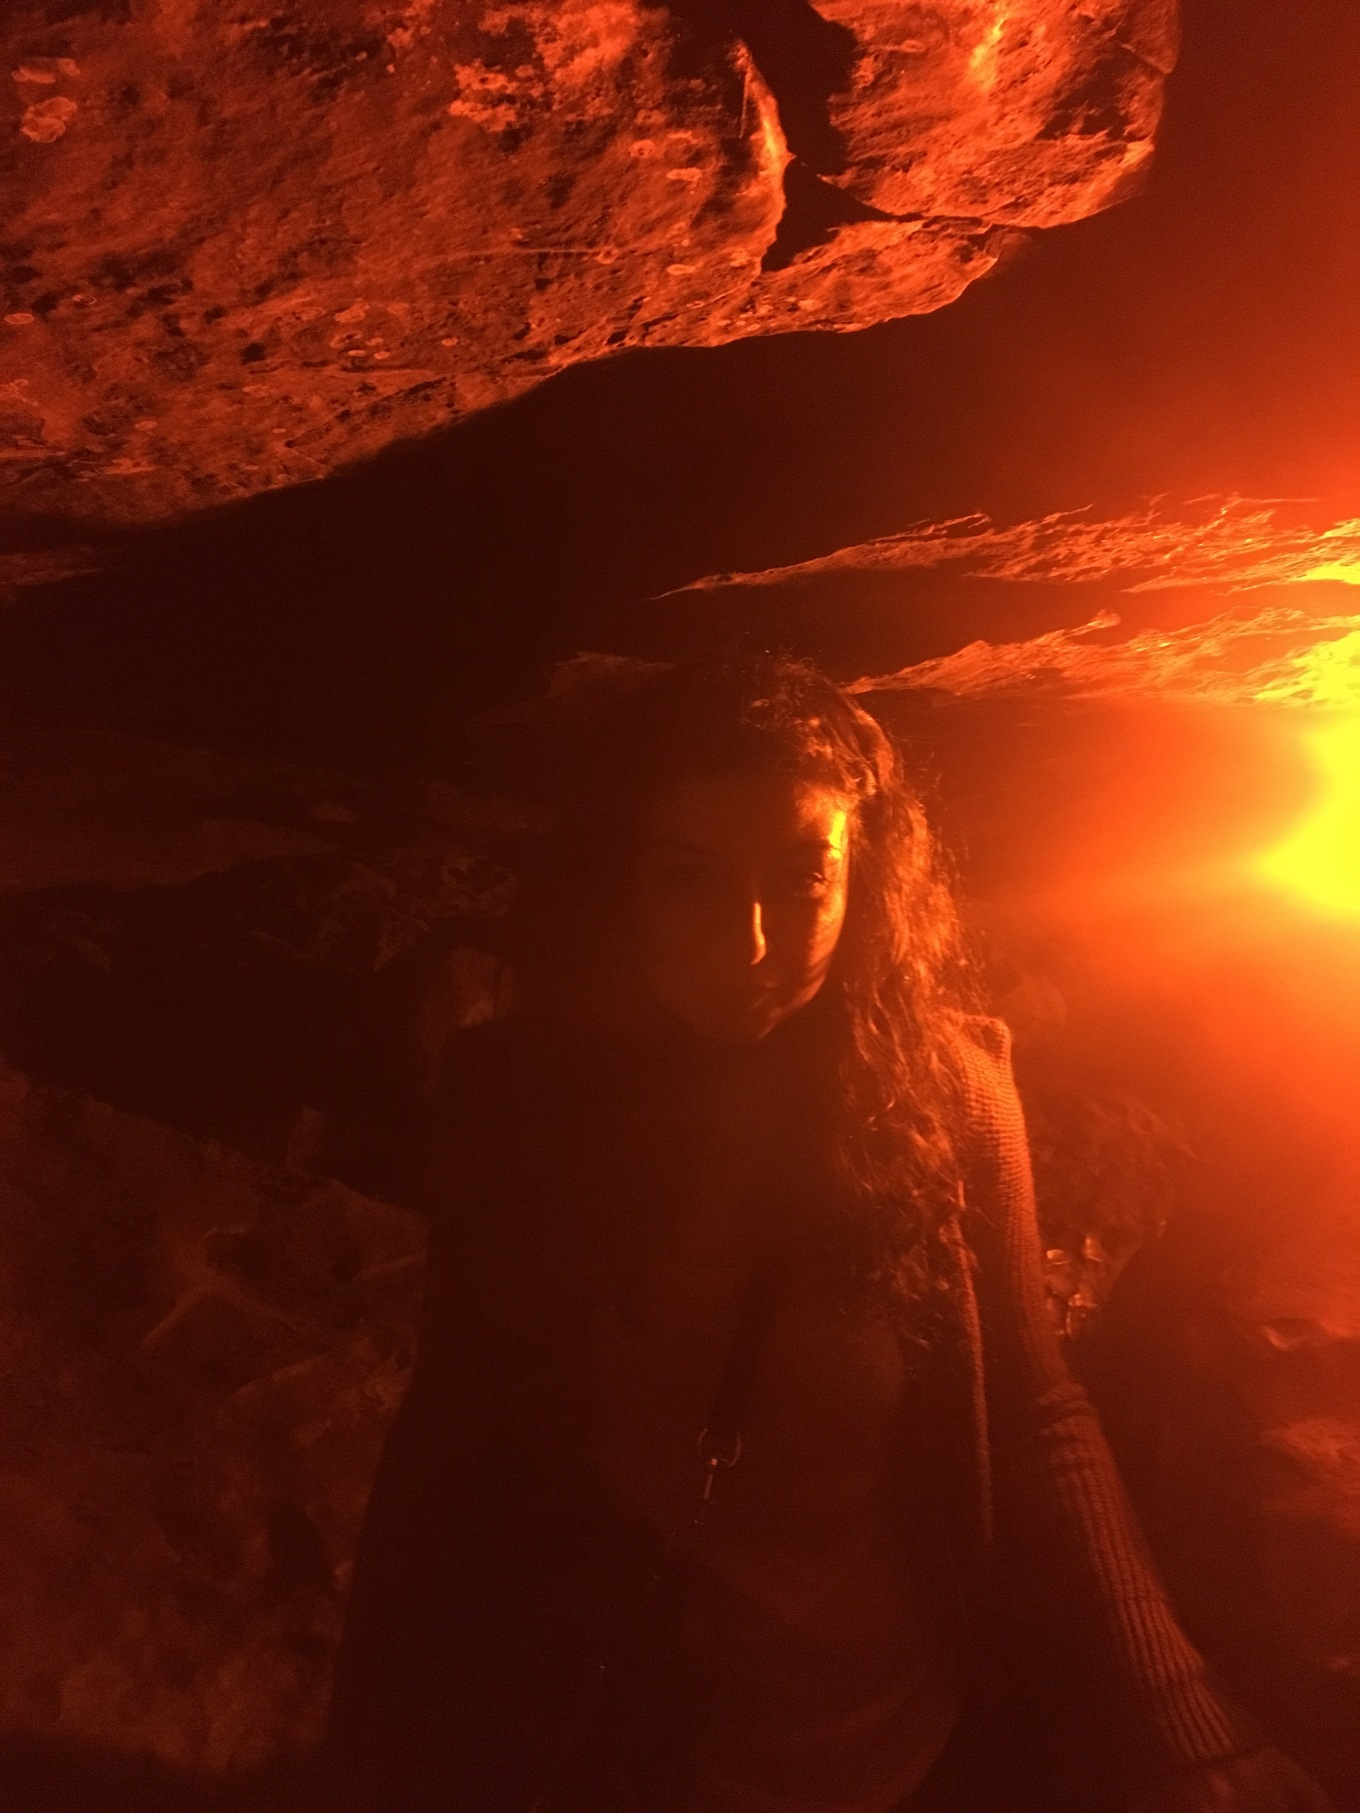 A smiling woman walking through Fat Man's Misery in the Mammoth Cave National Park